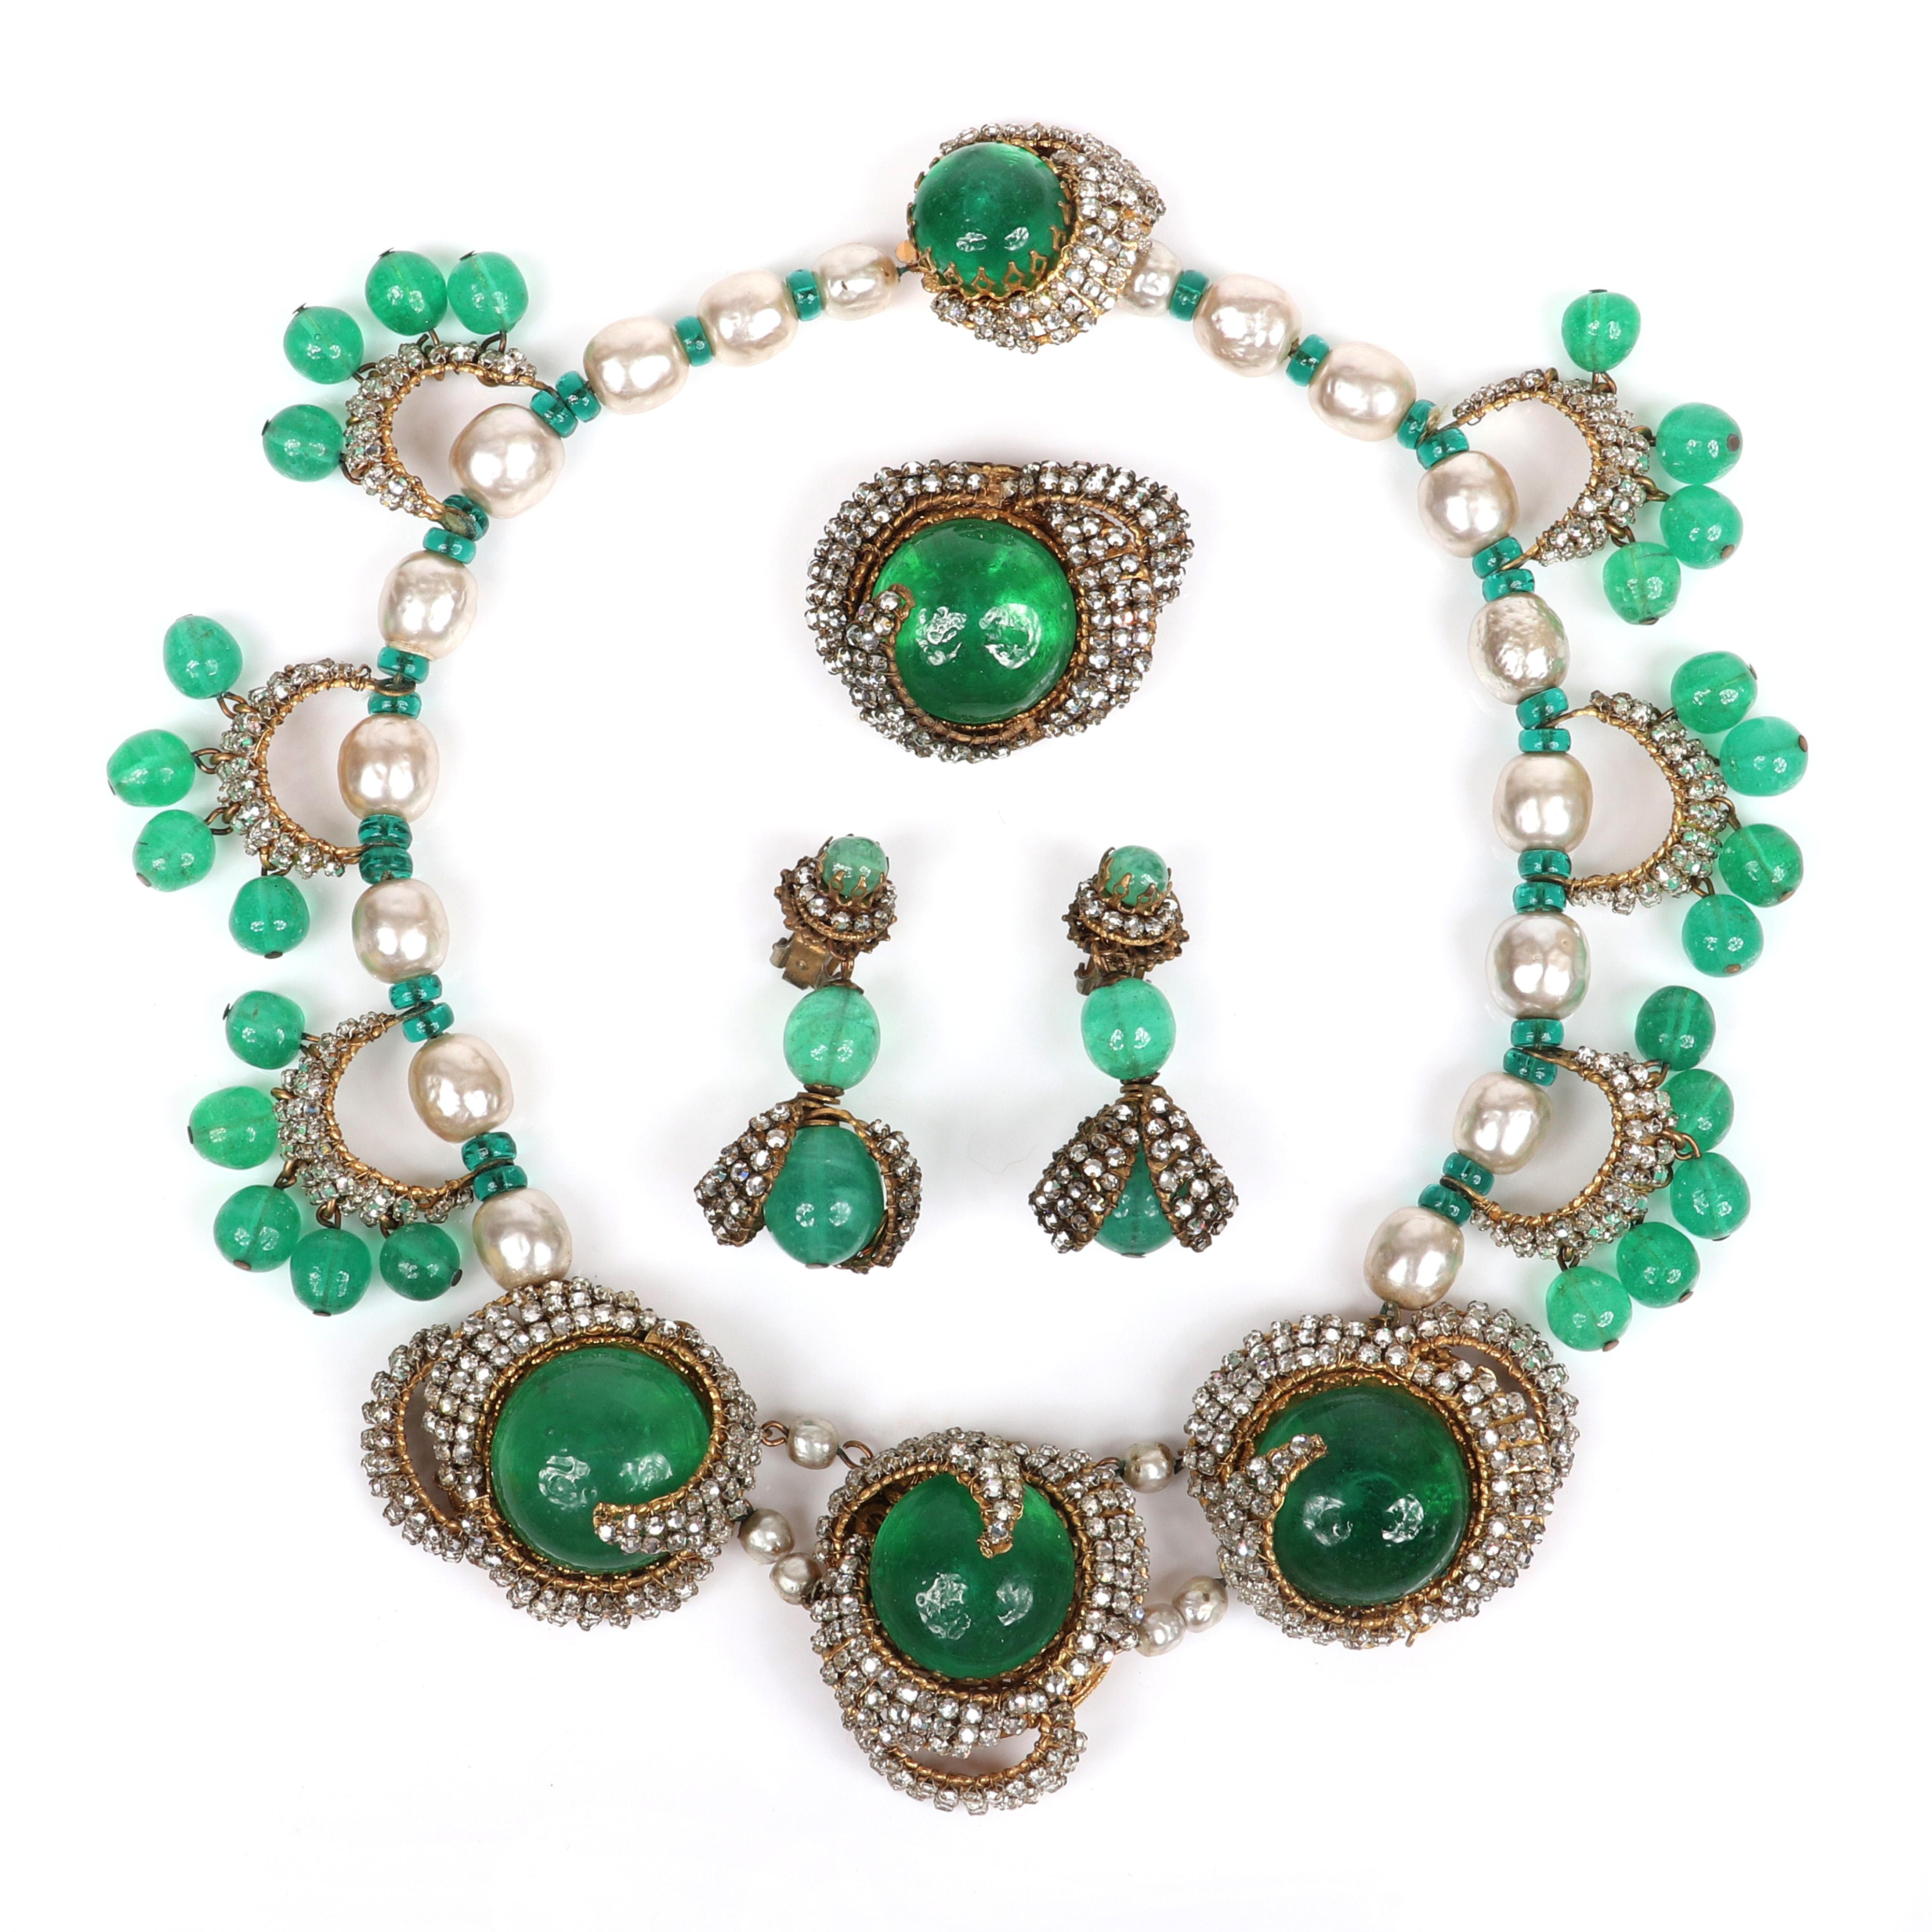 Miriam Haskell emerald green 3pc. parure; collar necklace with pave rhinestone encrusted glass cabochons and crescent stations with dangle beads, with matching pin brooch and earrings.